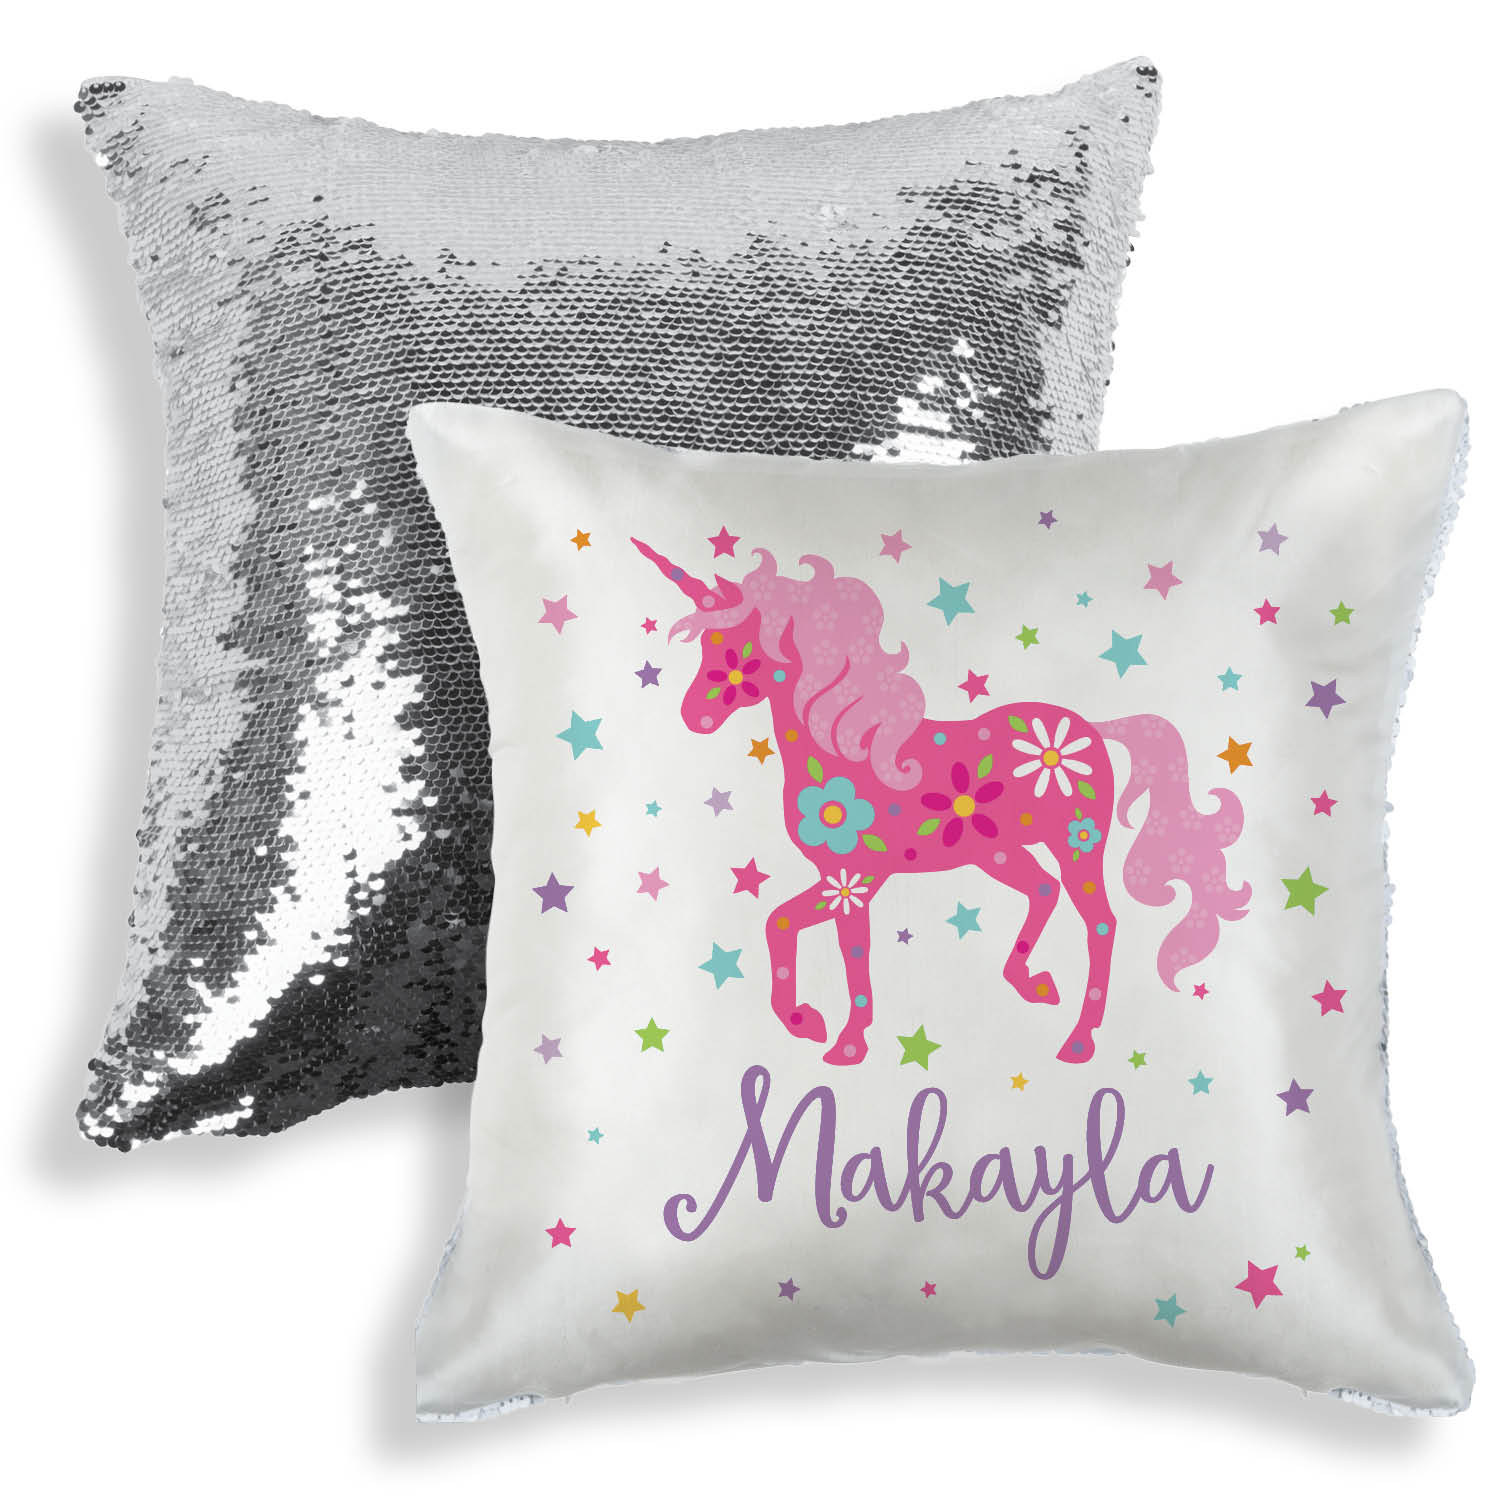 Personalized Sequin Pillow - Unicorn